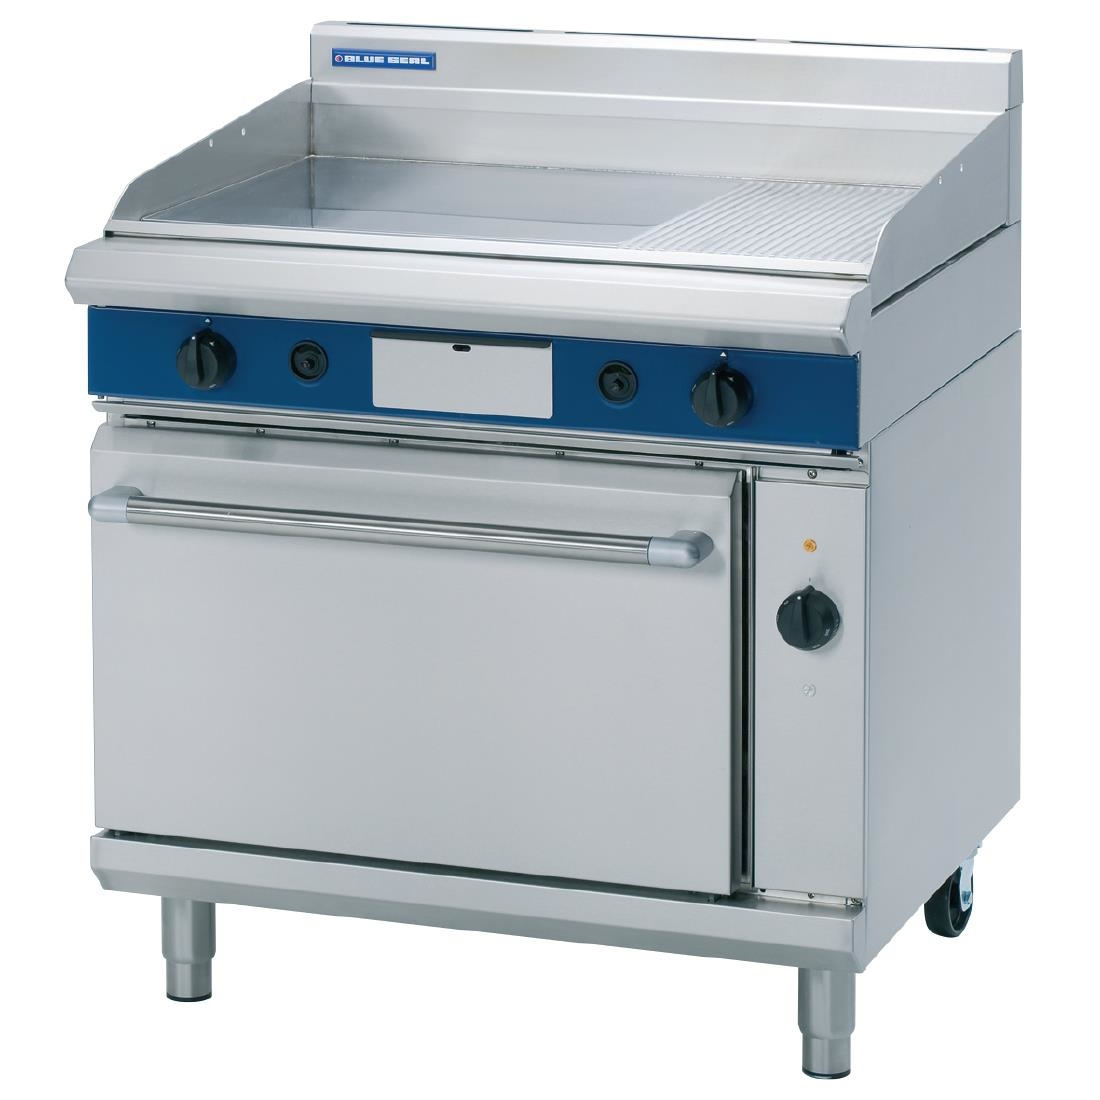 Image of Blue Seal Evolution Nat Gas 1/3 Ribbed Griddle Electric Convection Oven 900mm GPE56/N